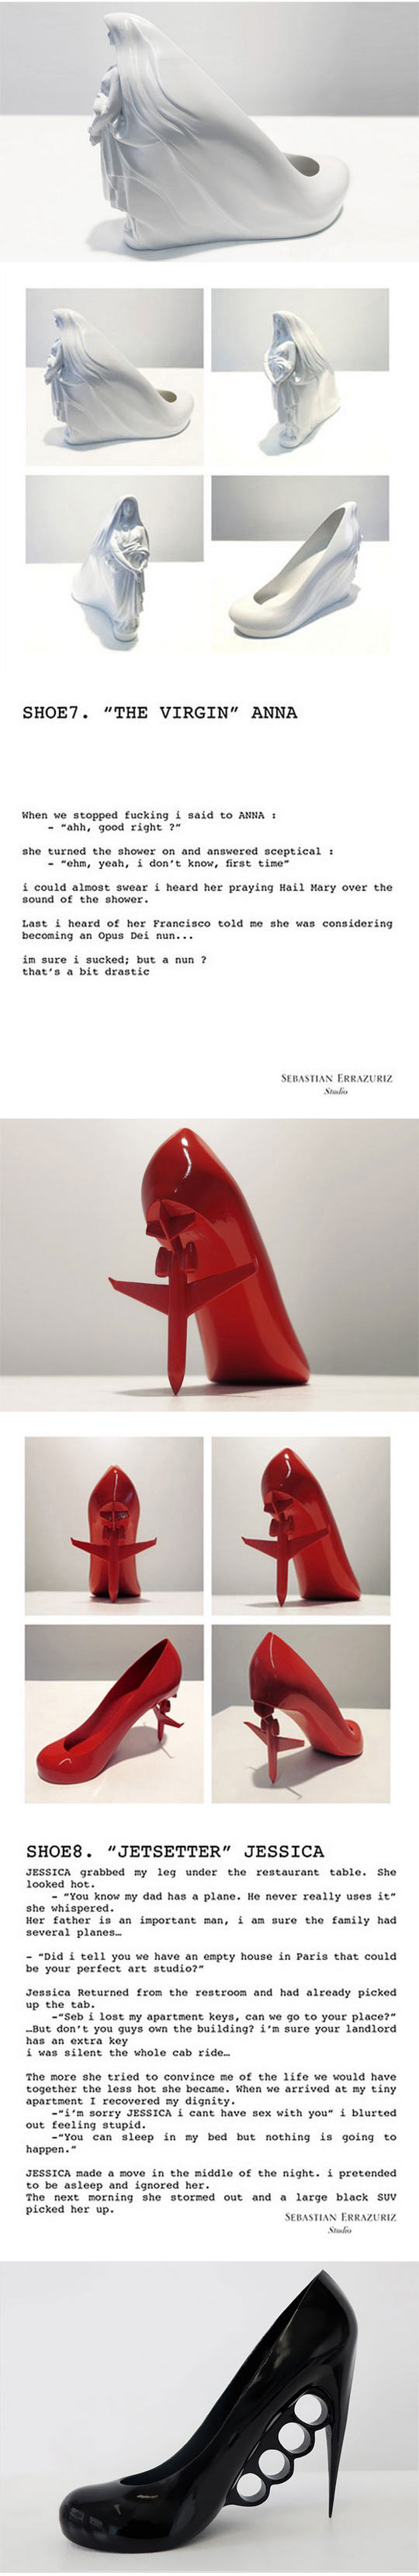 funny-feet-shoes-women-artist-fashion